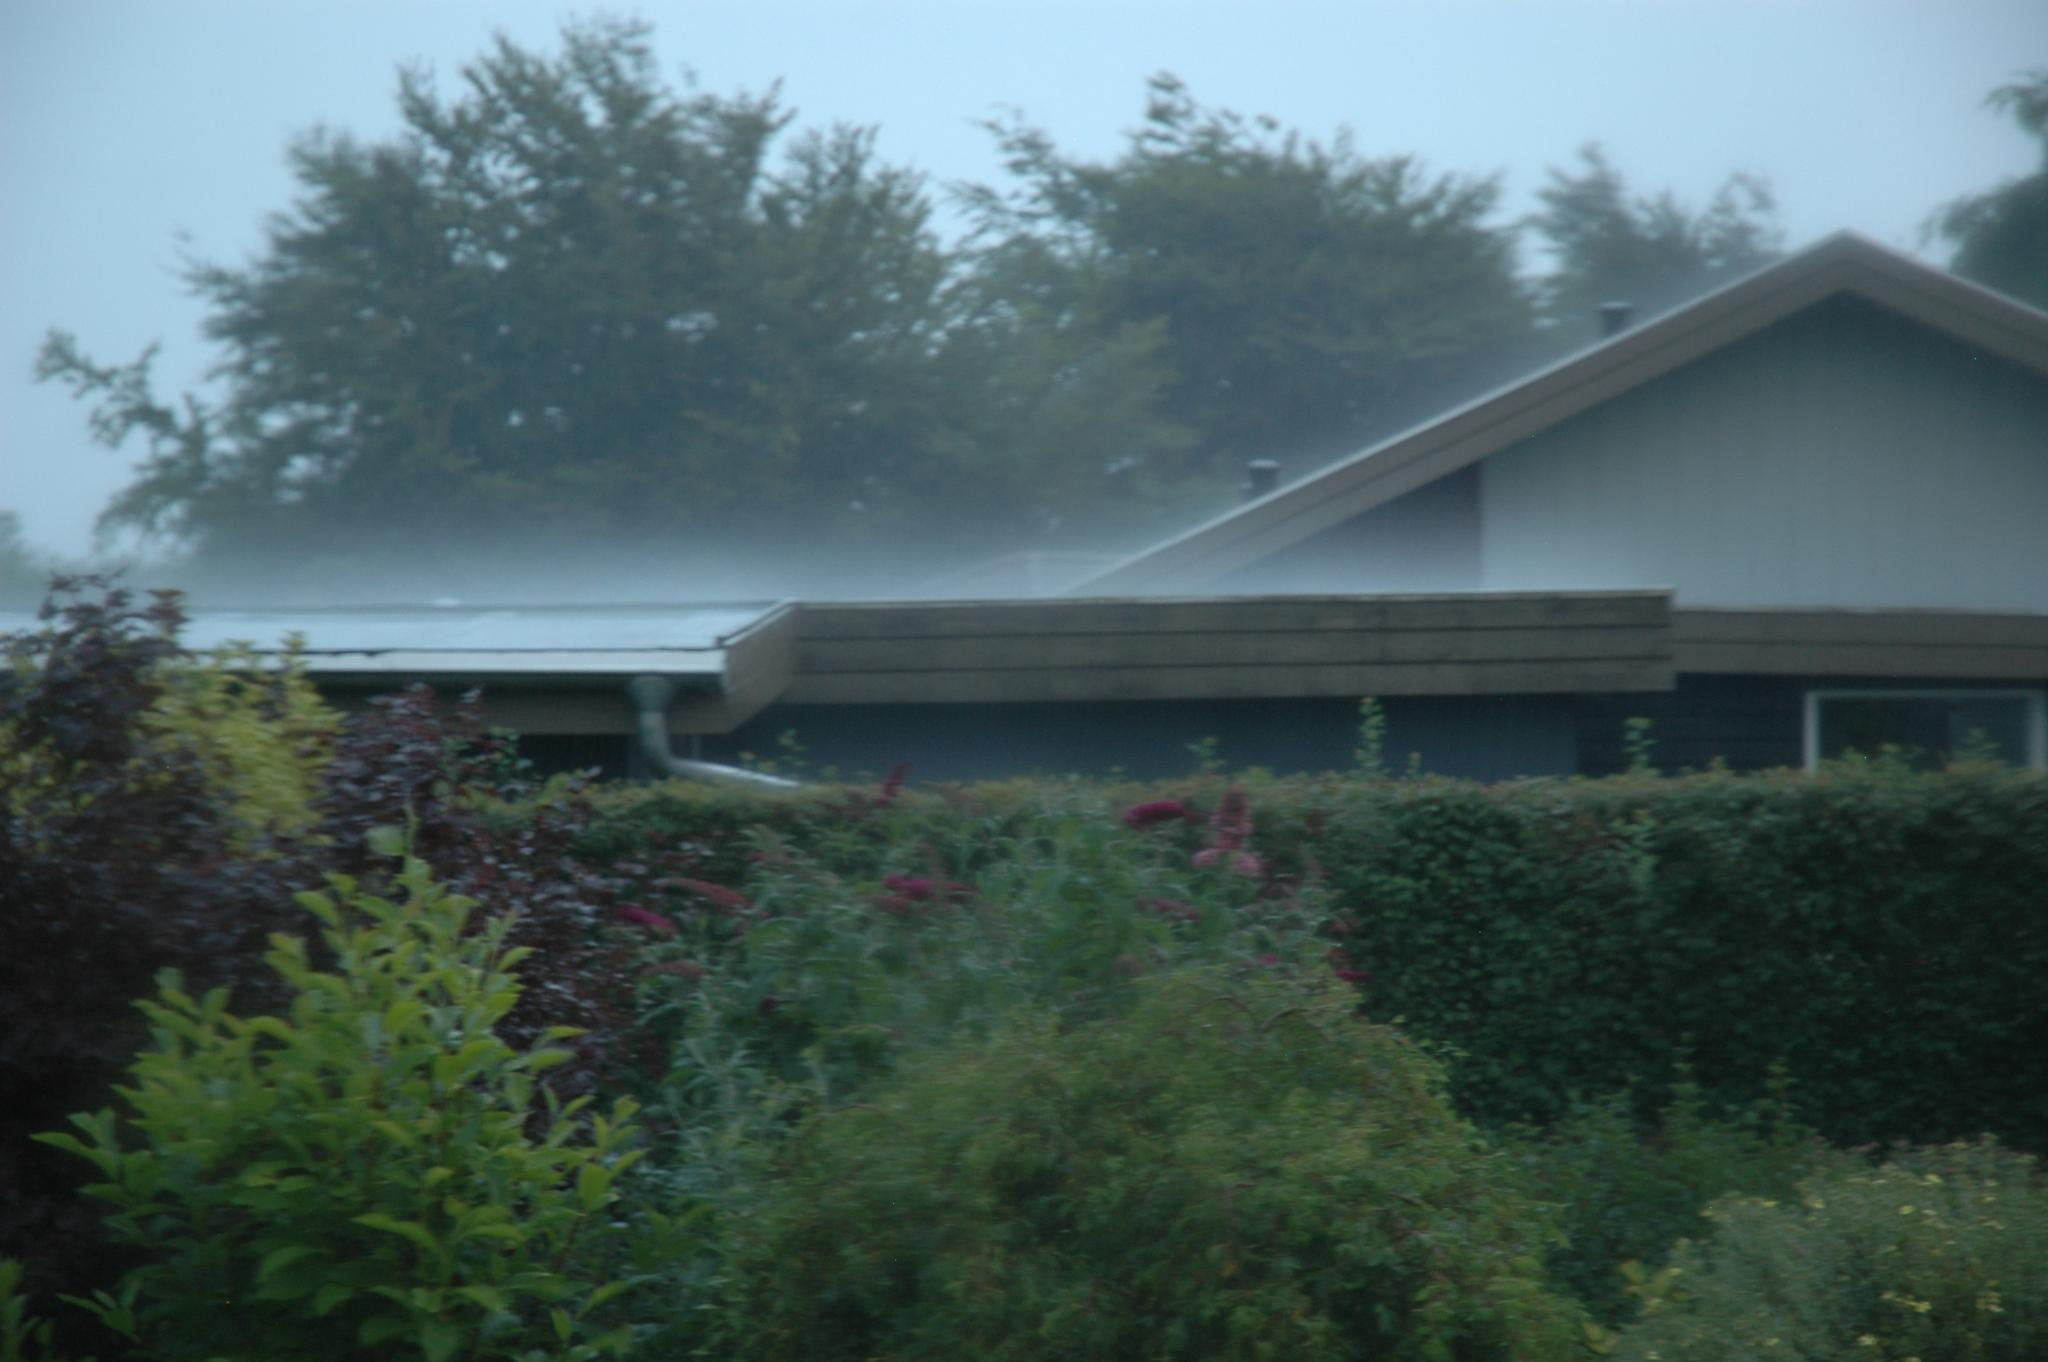 Water vapour on garage roof by Steen Skov